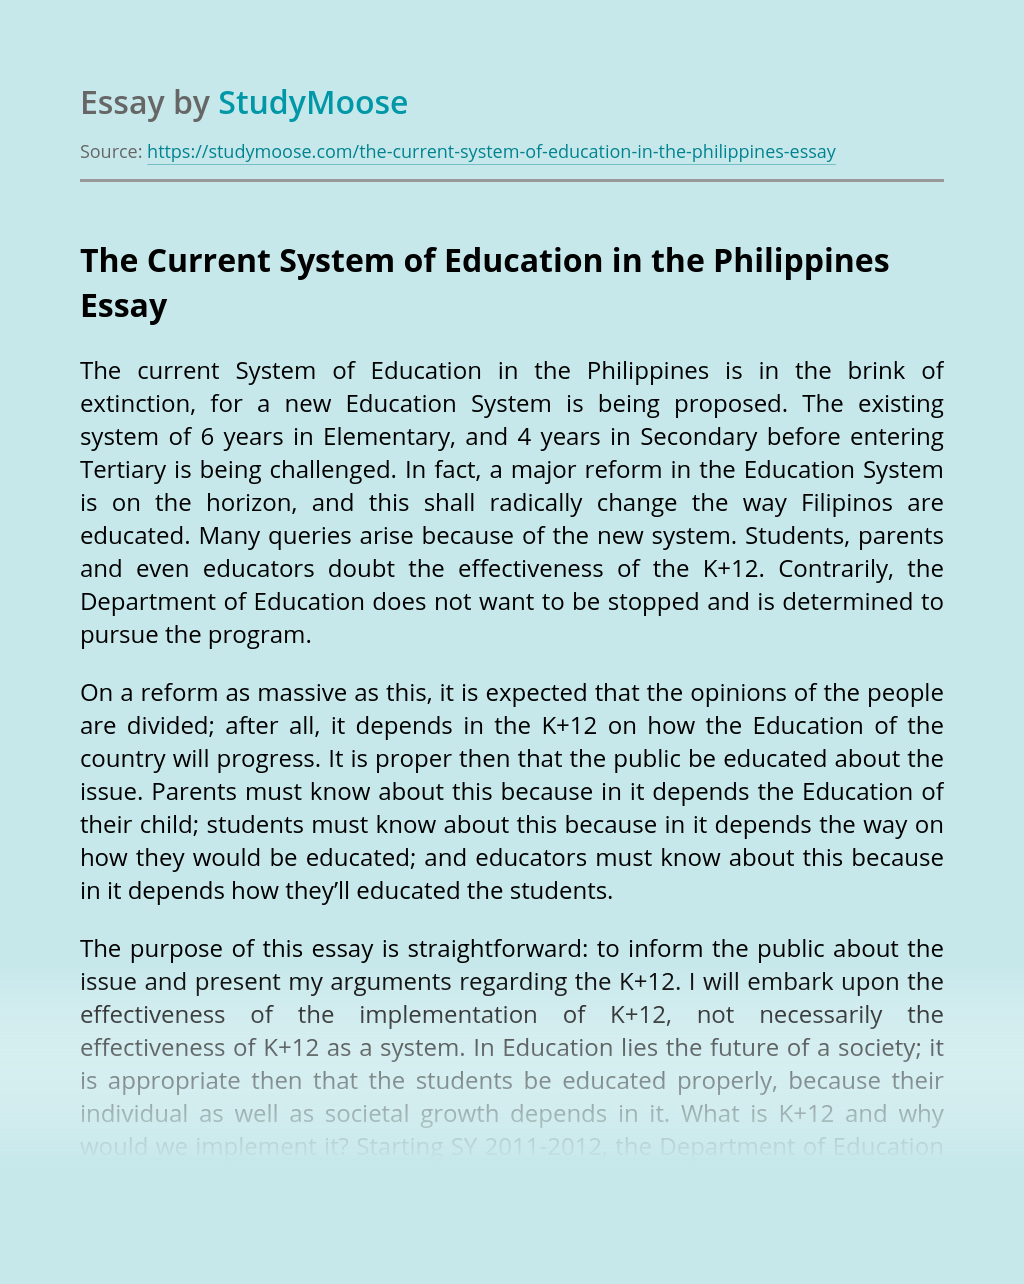 The Current System of Education in the Philippines